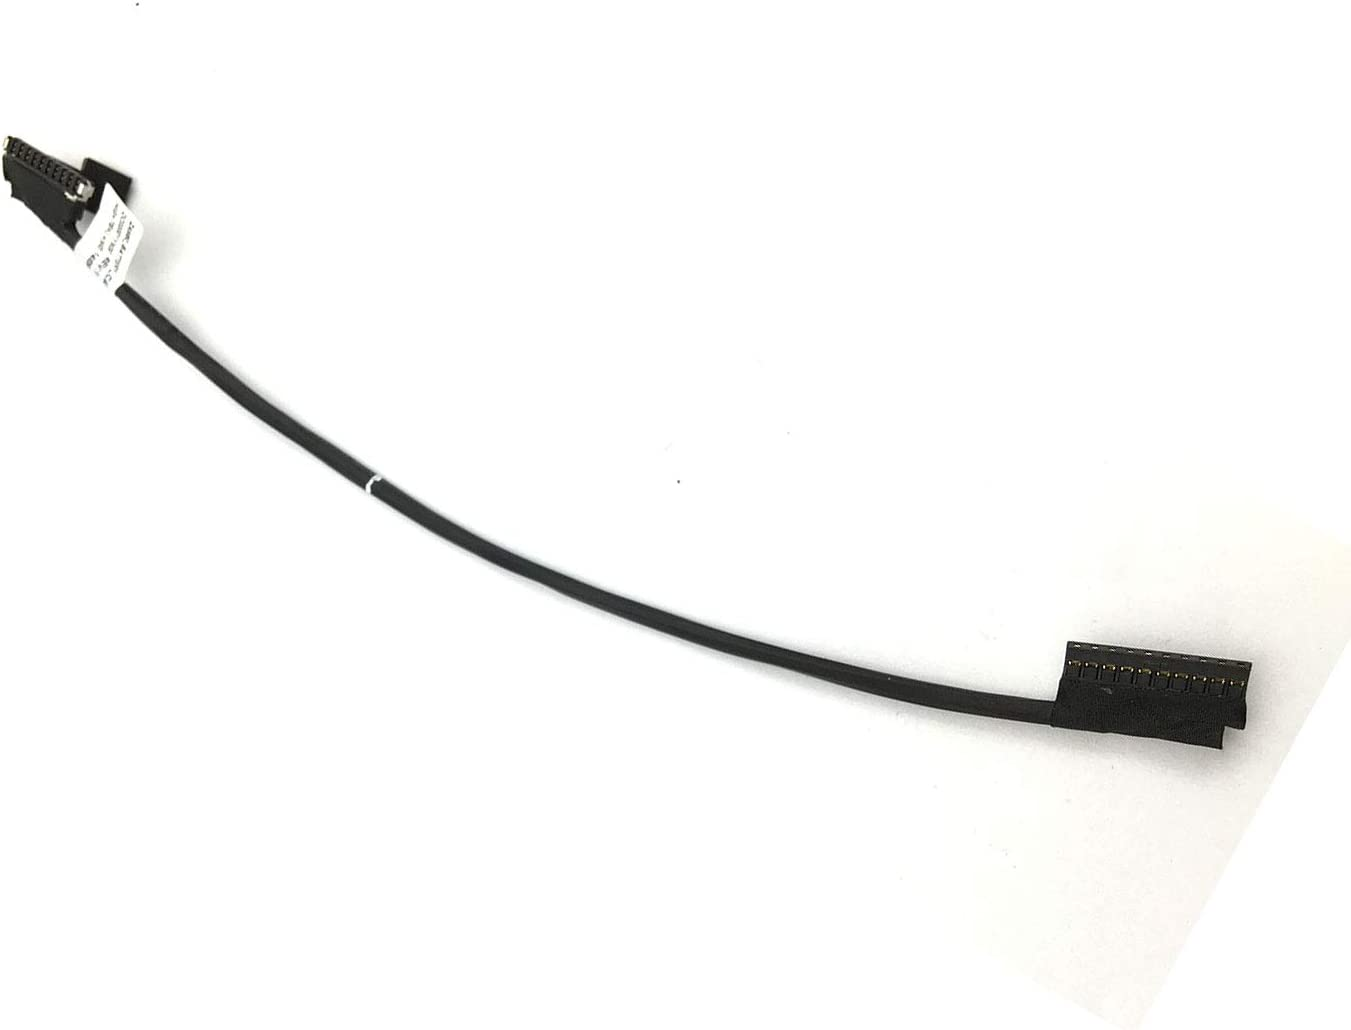 Dentsing ADM60 Battery Cable Wire Cord Compatible with DELL Latitude E5270 5270 0NTWN DC020027N00